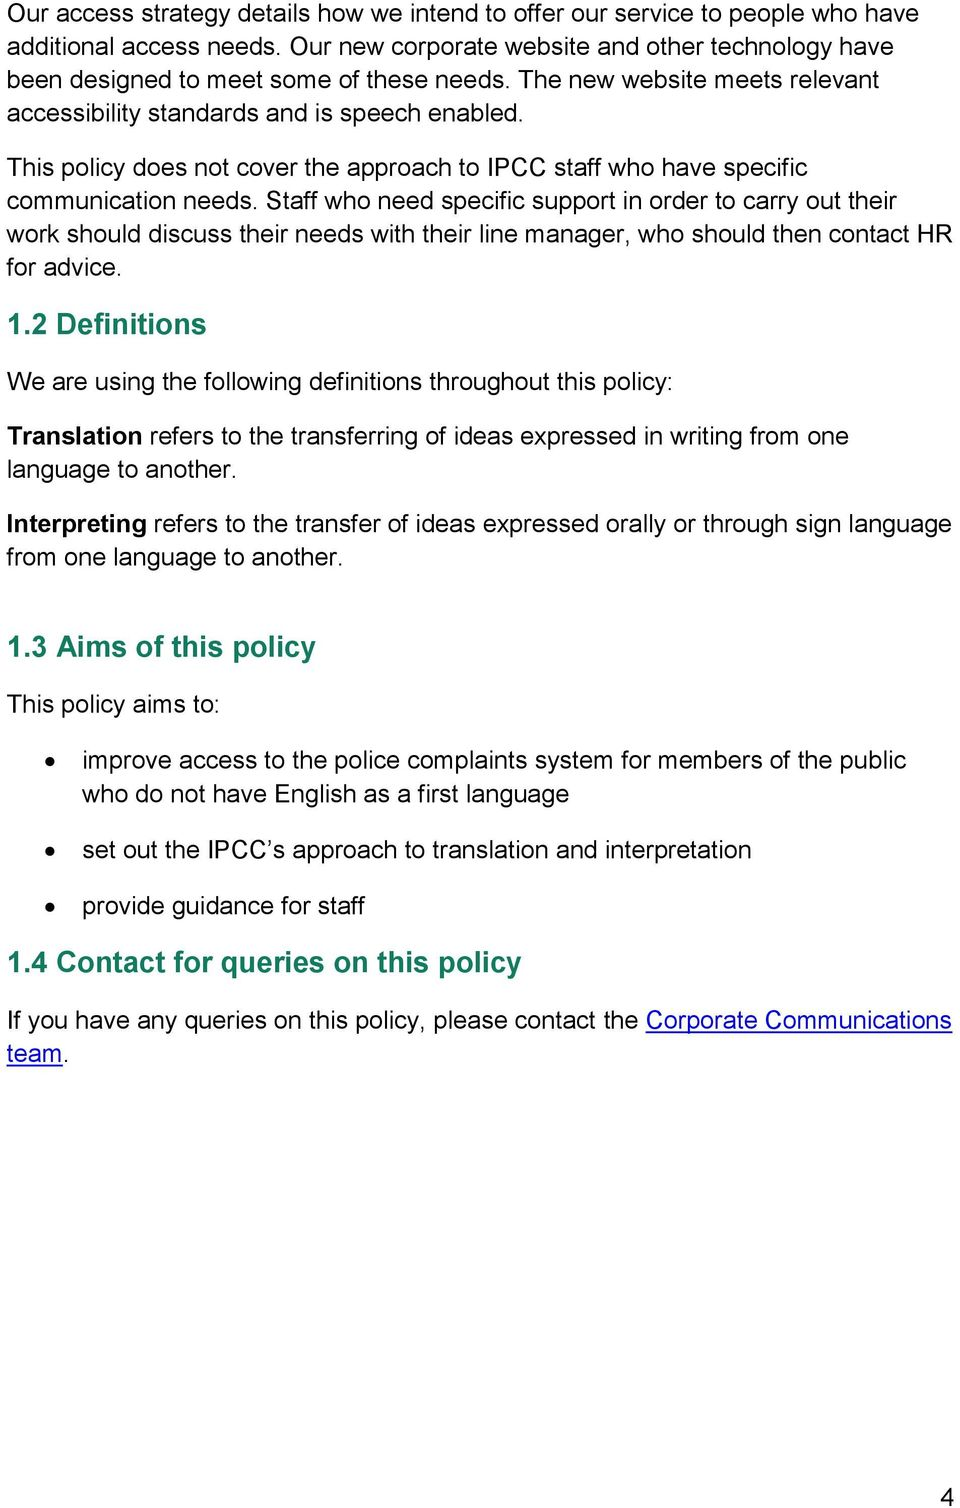 This policy does not cover the approach to IPCC staff who have specific communication needs.